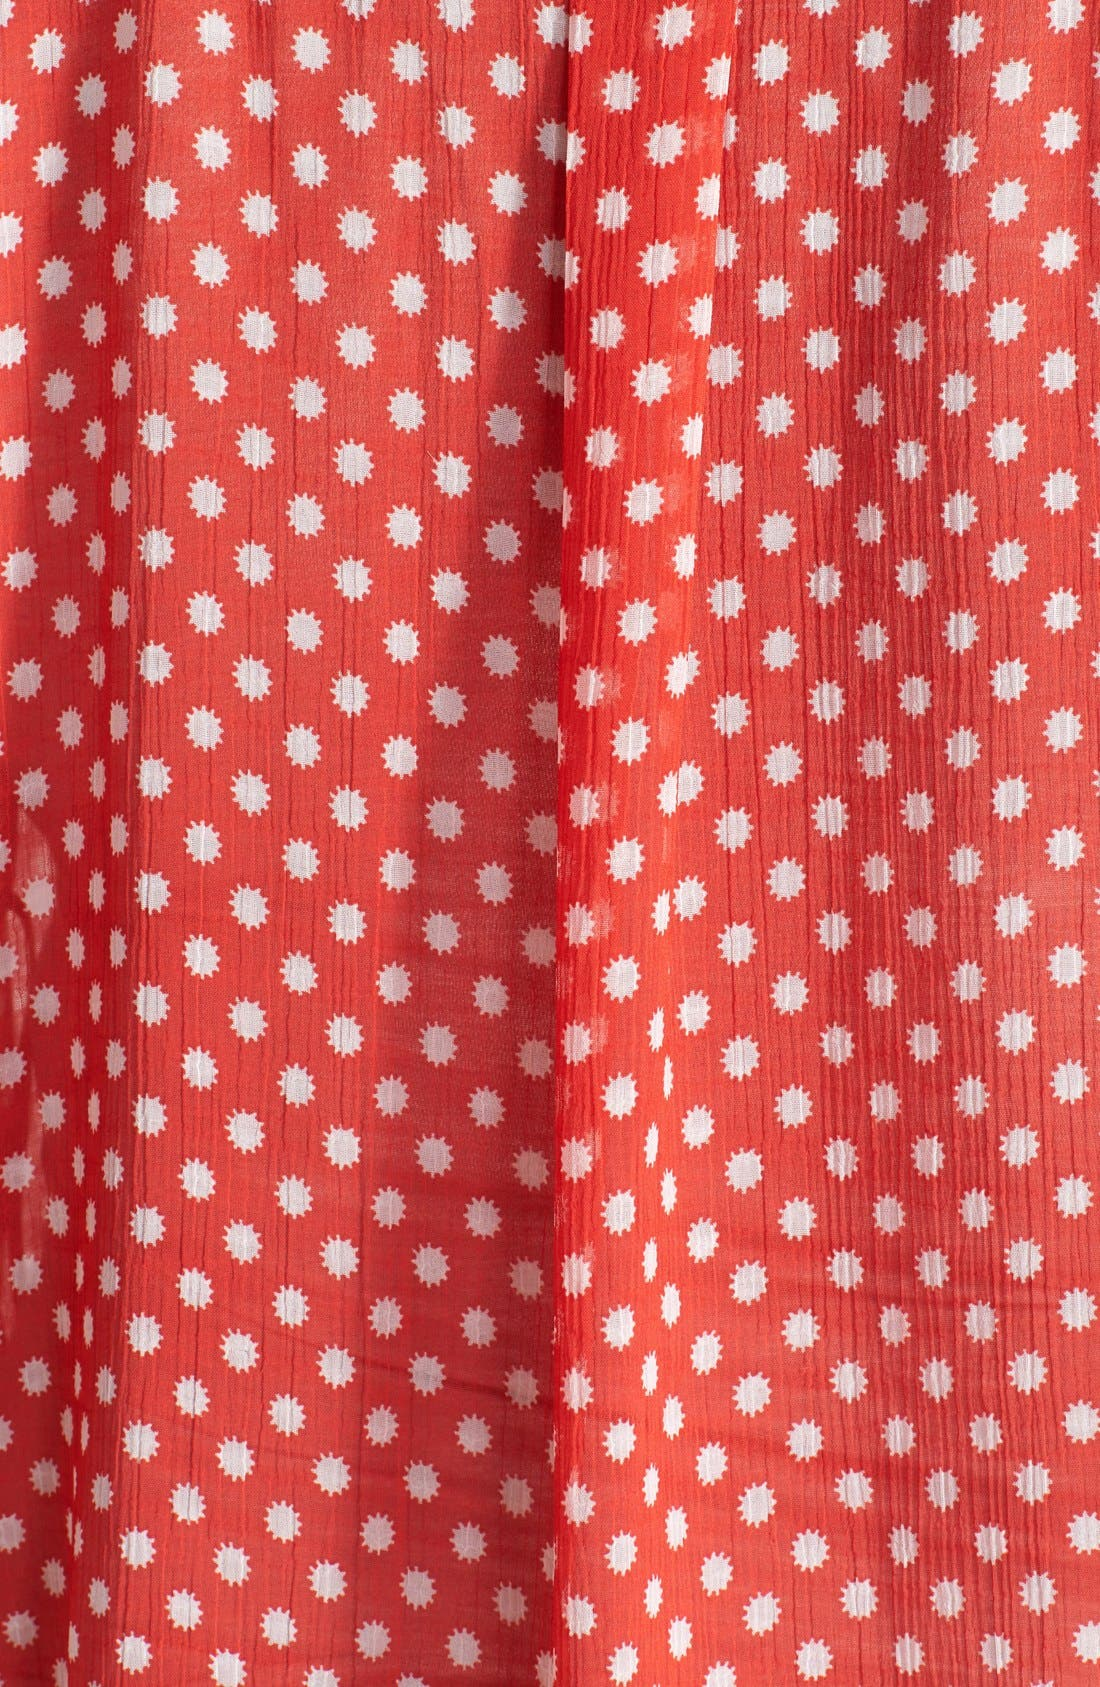 Alternate Image 3  - Two by Vince Camuto 'Star Dot' Blouse (Plus Size)